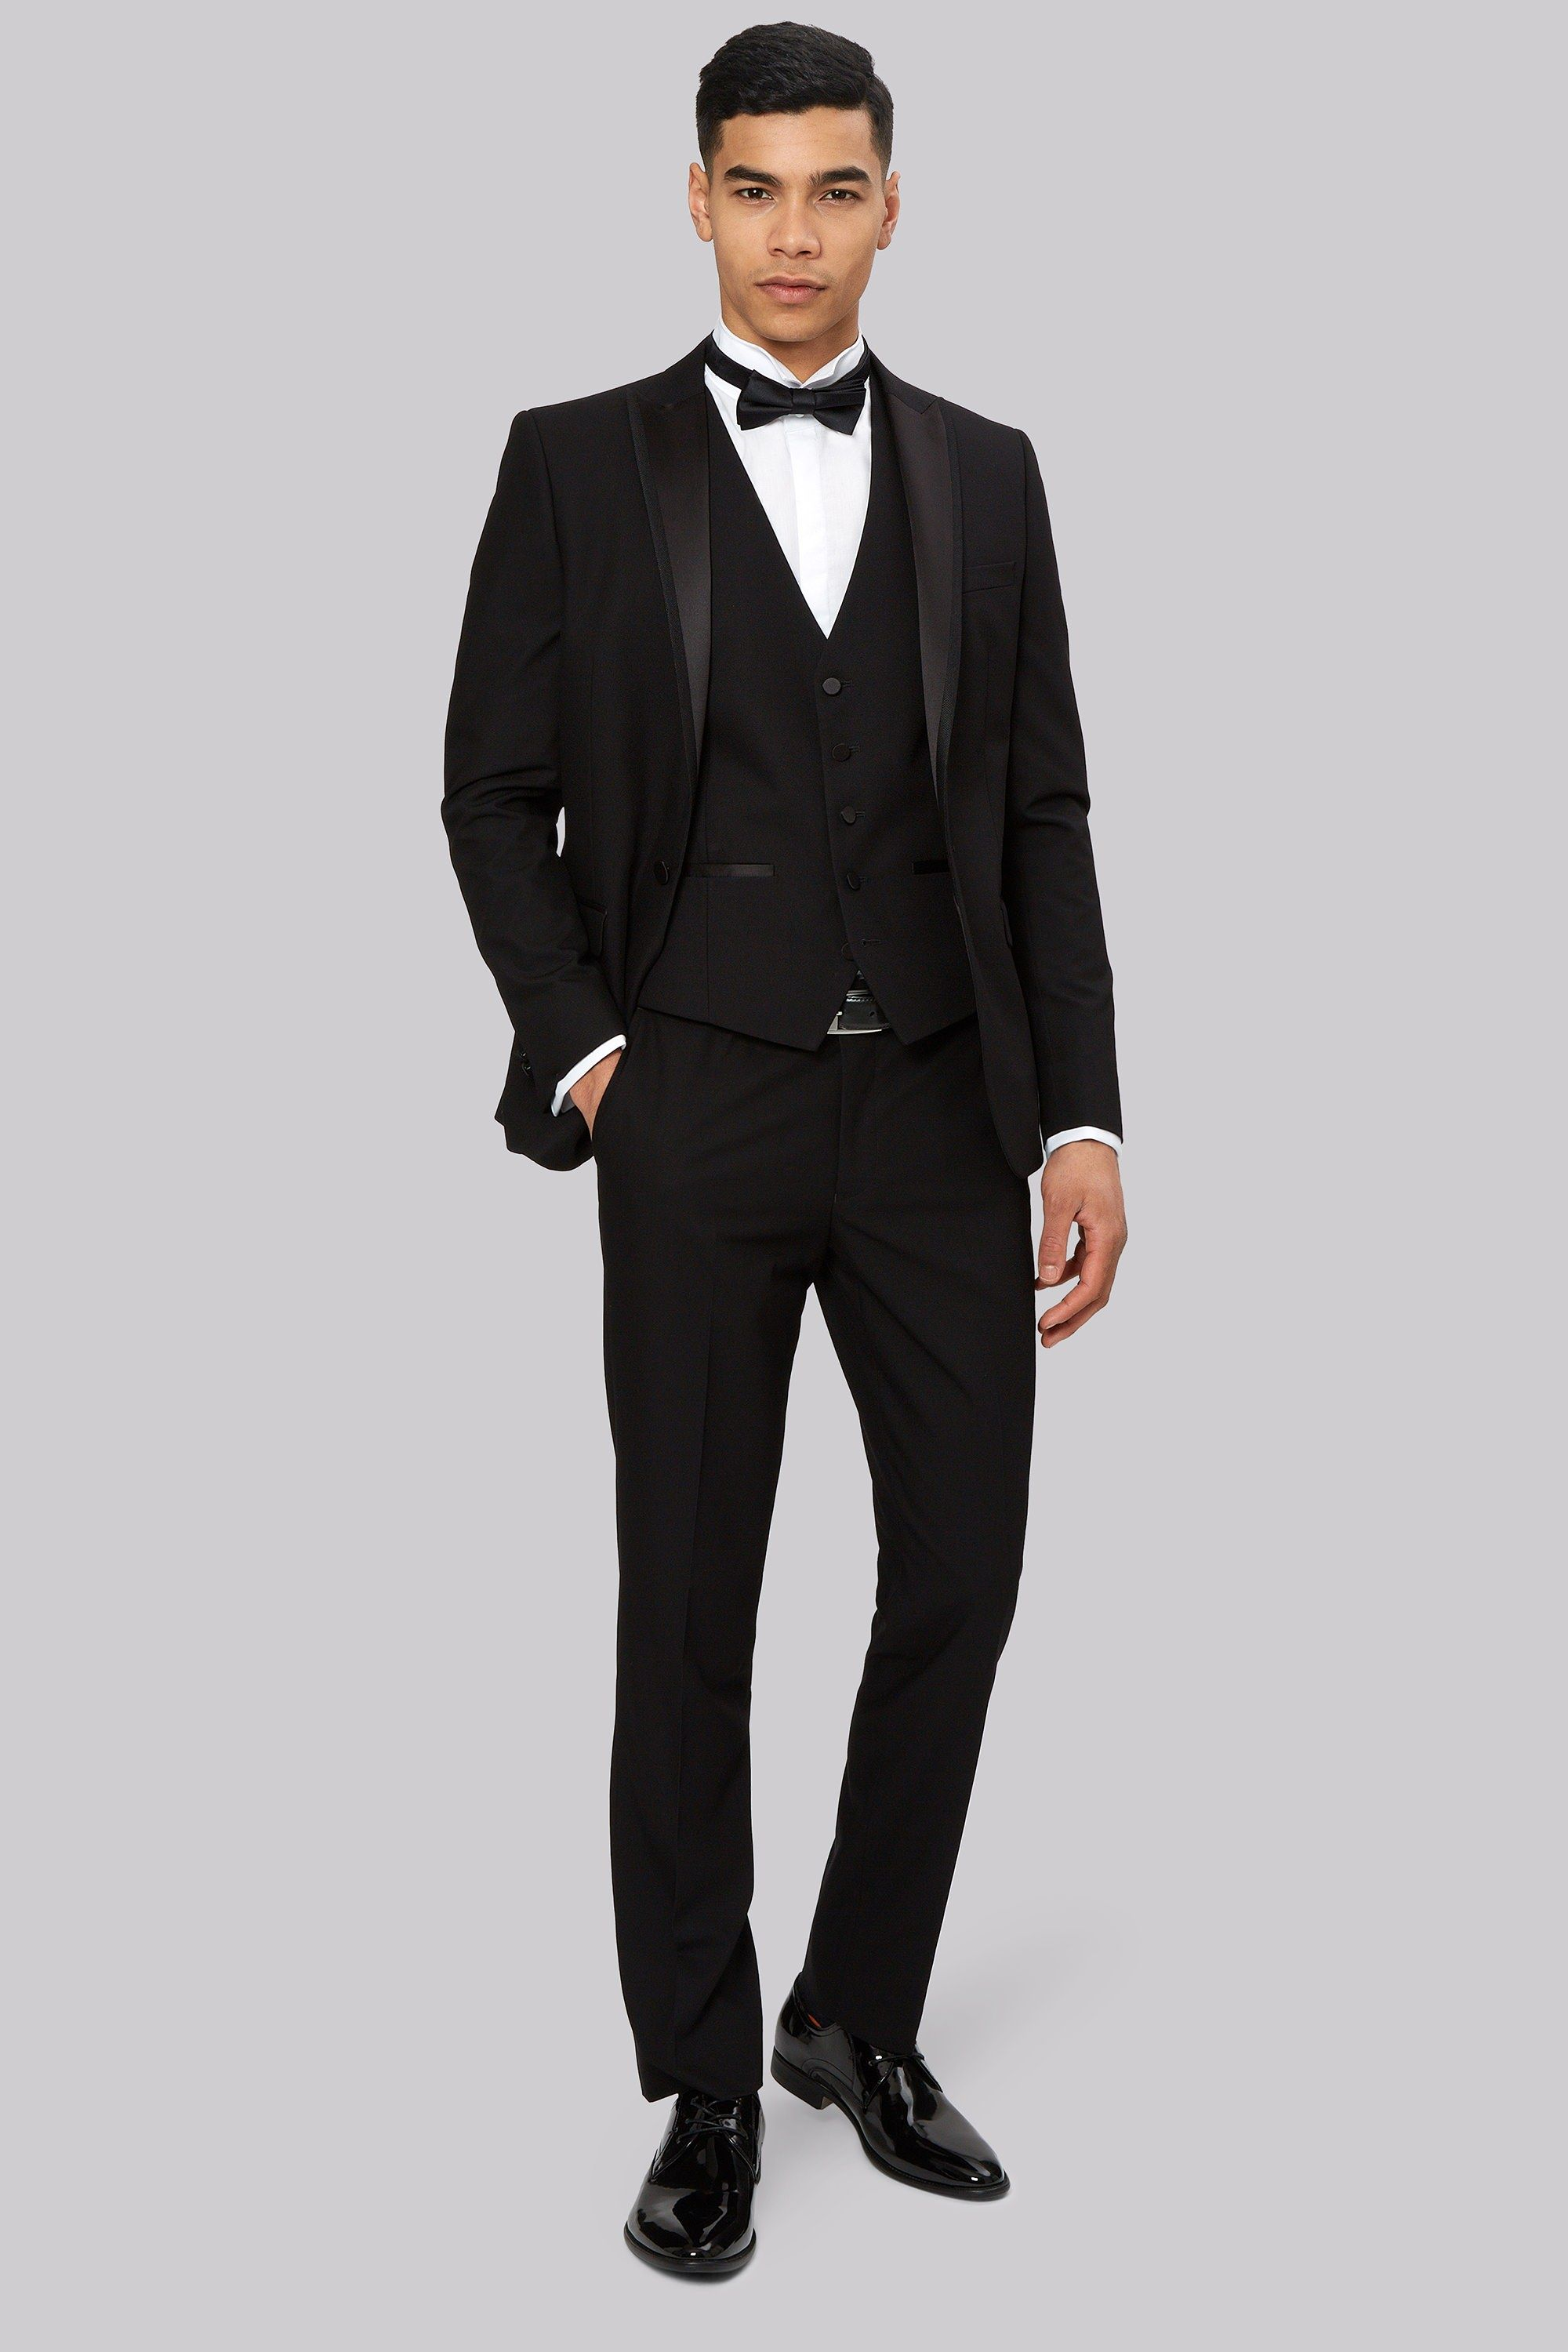 nail your prom with style  black red prom suits prom